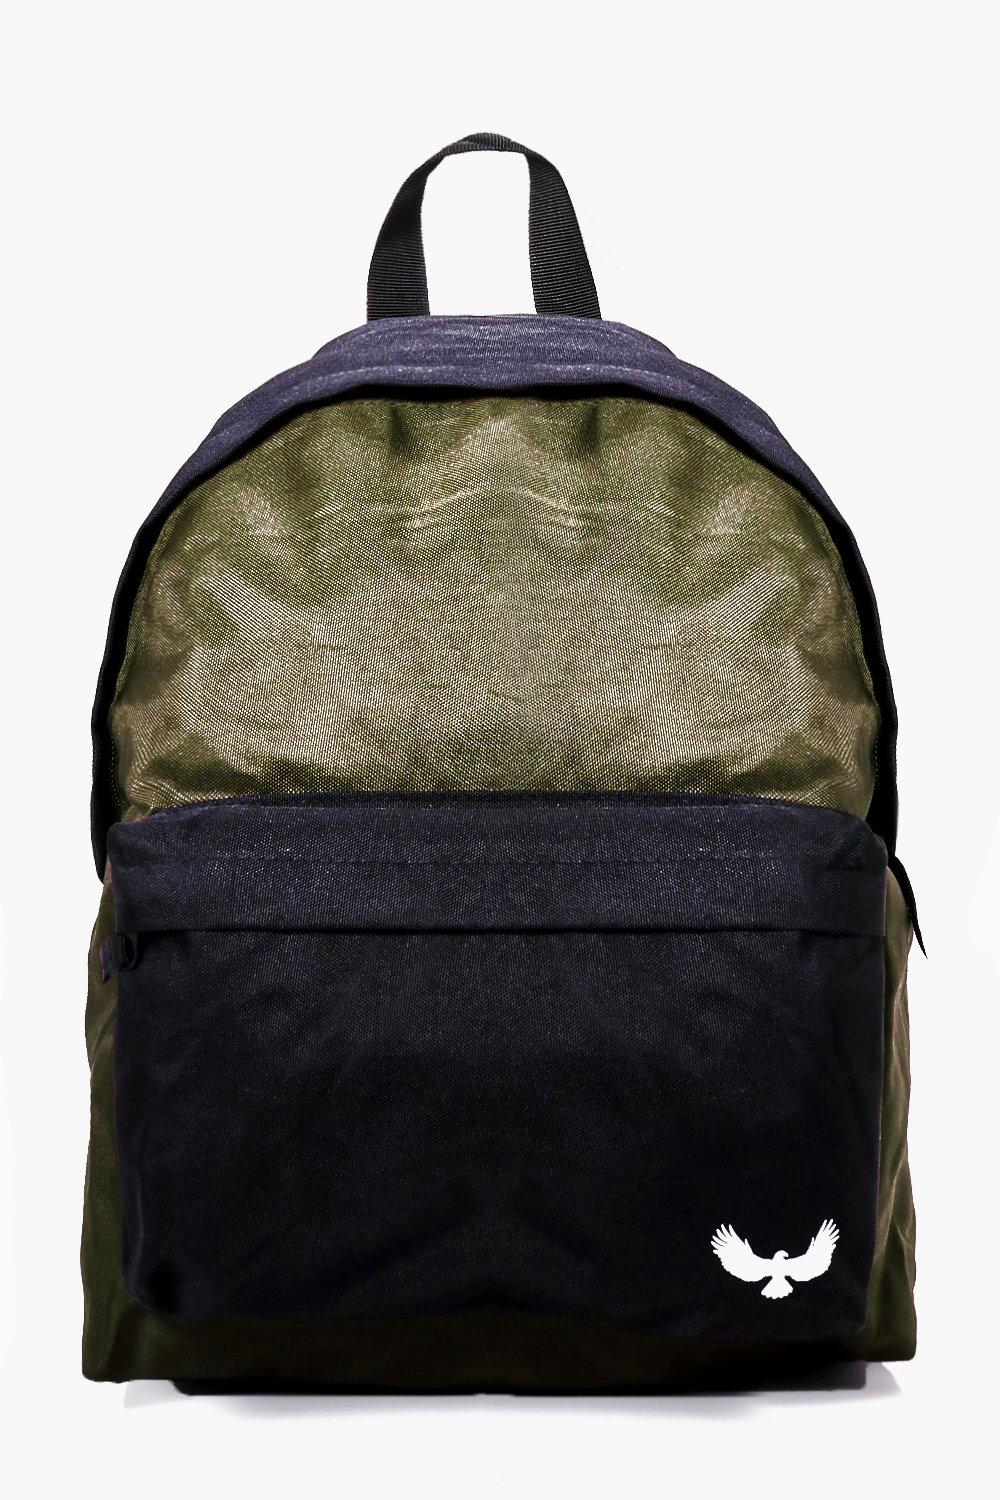 Contrast Panel Canvas Backpack - khaki - Khaki Con